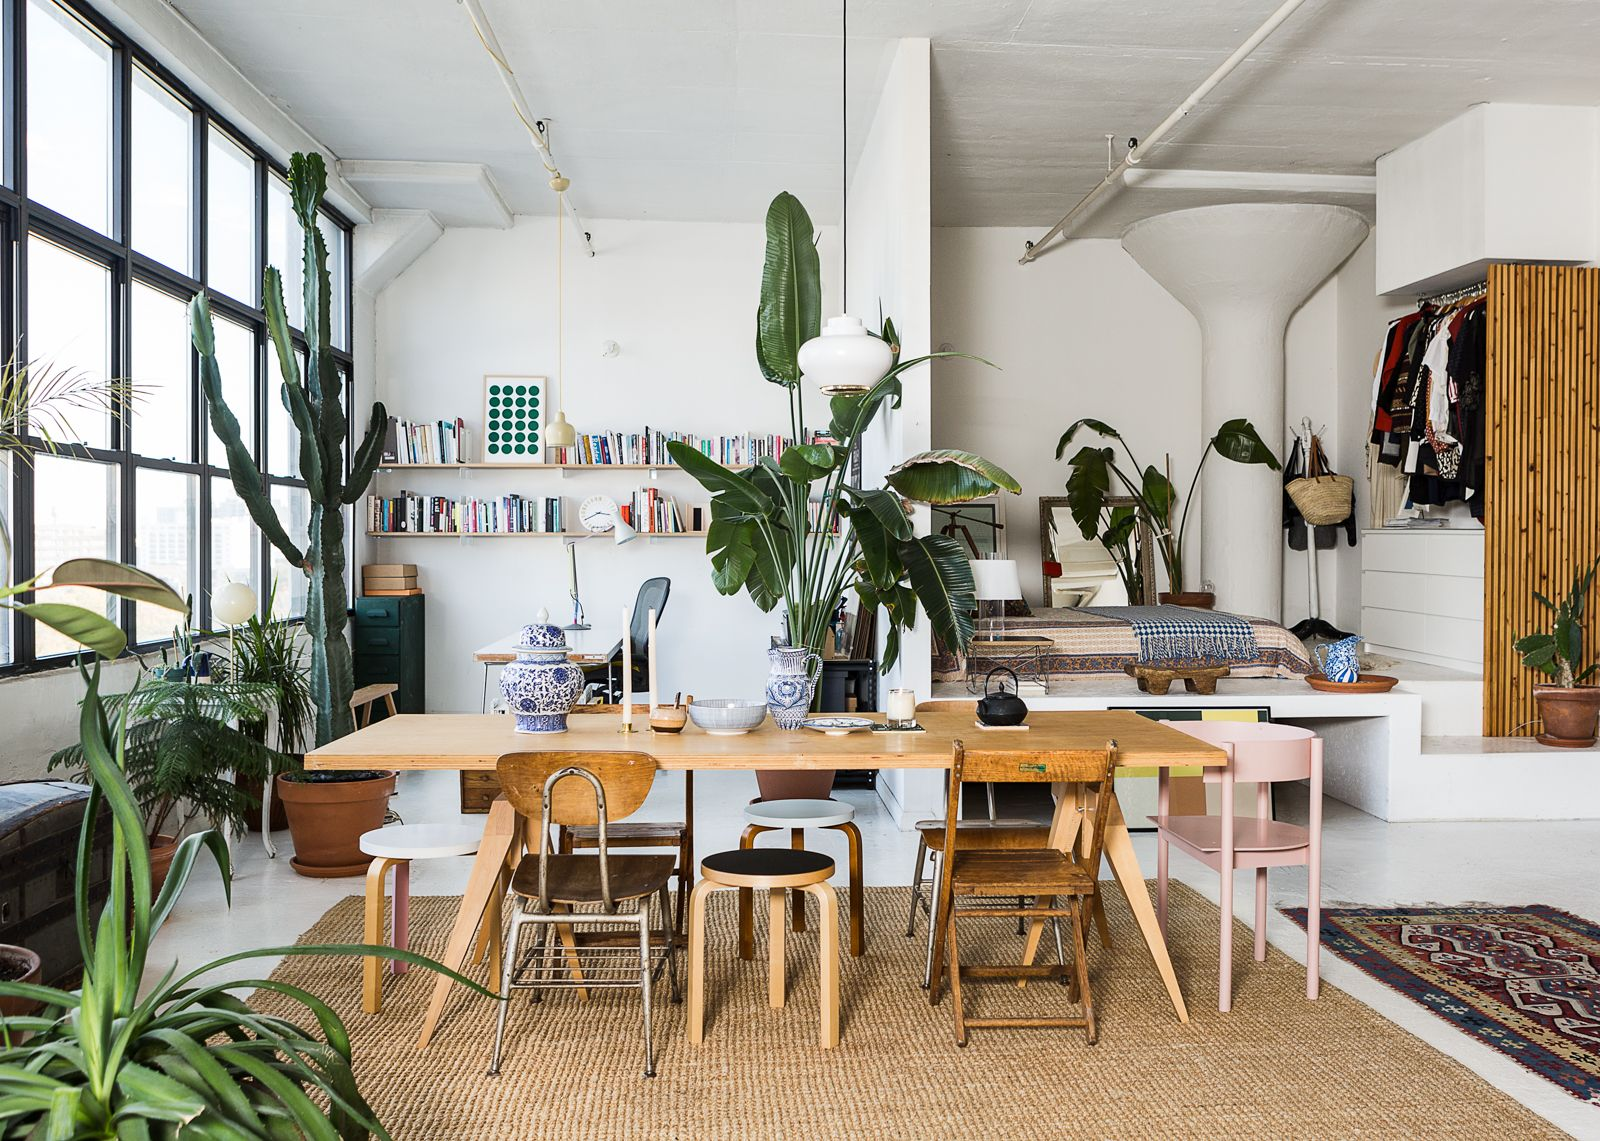 If You Need White Walls Apartment Decorating Inspiration This Downtown Brooklyn Spot Has Covered